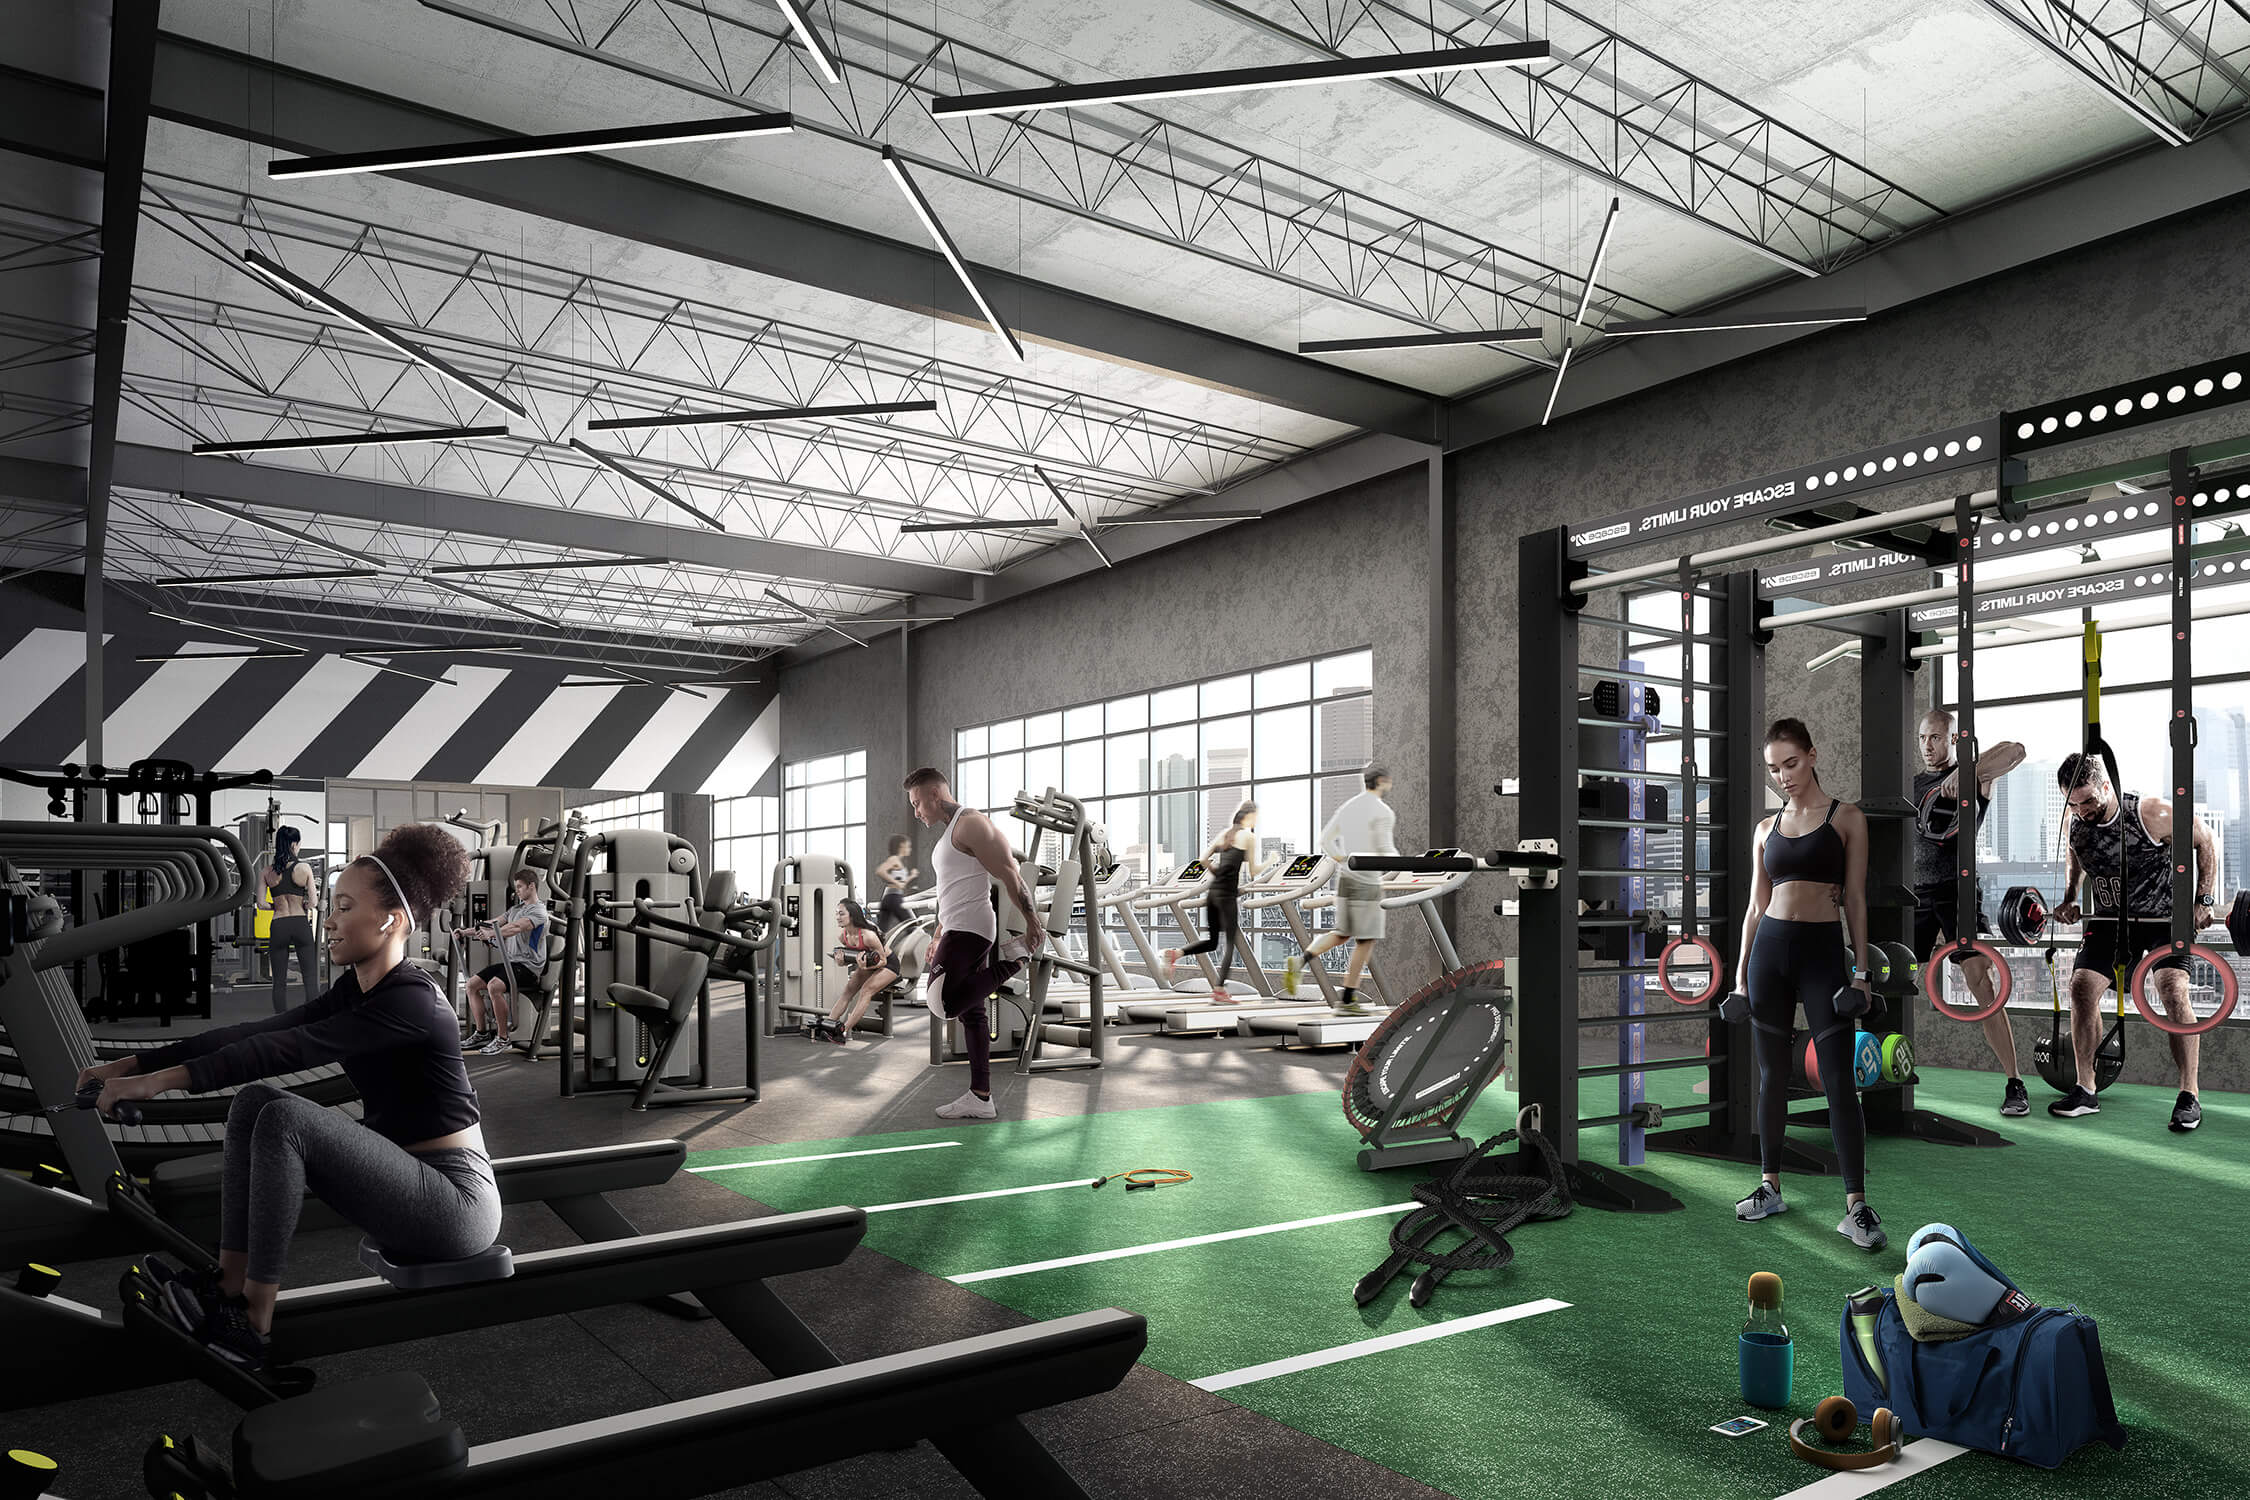 Apartment building fitness center that can replace your Equinox membership